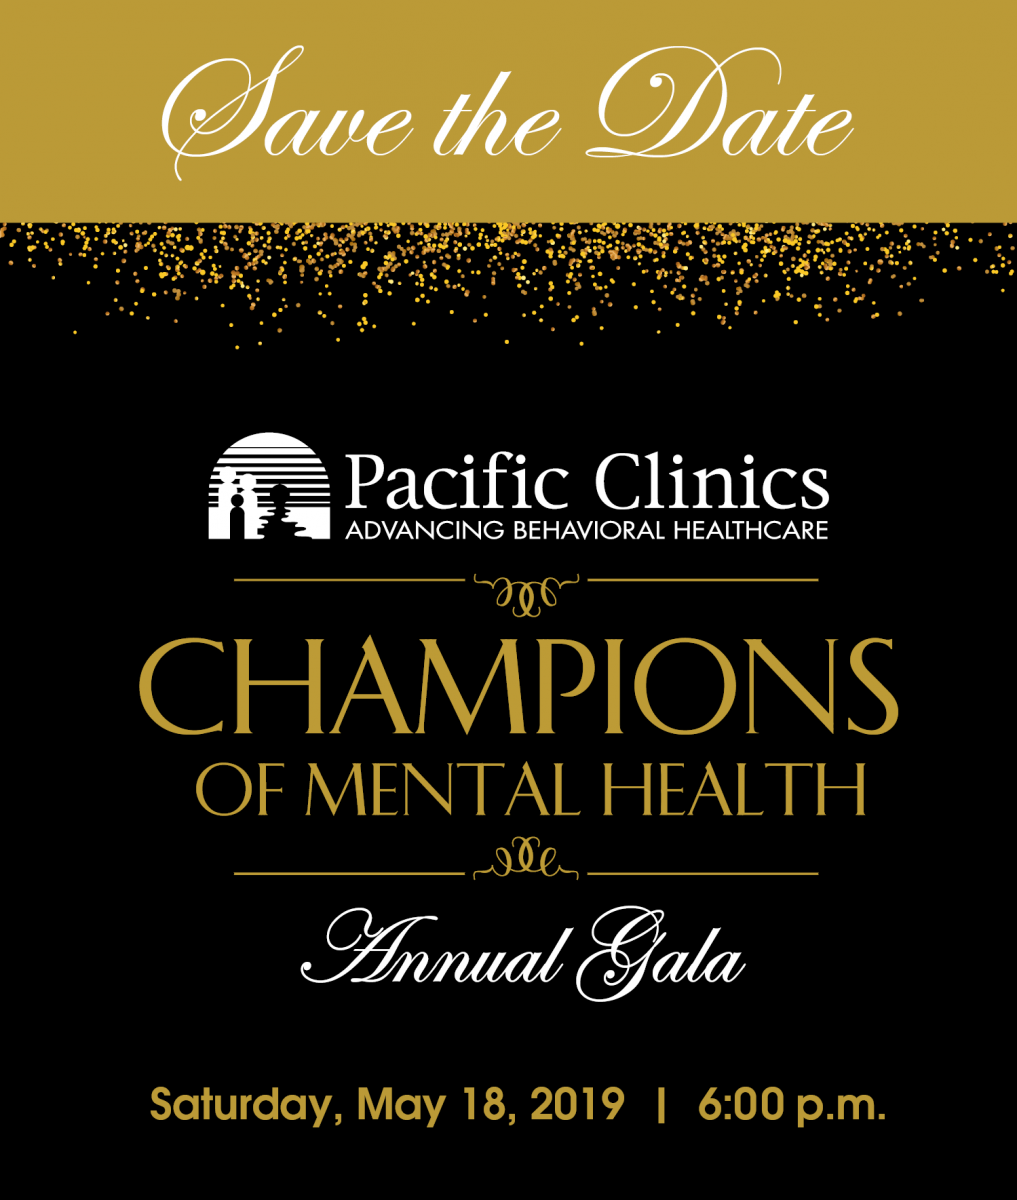 Save The Date For The 2019 Champions of Mental Health Gala